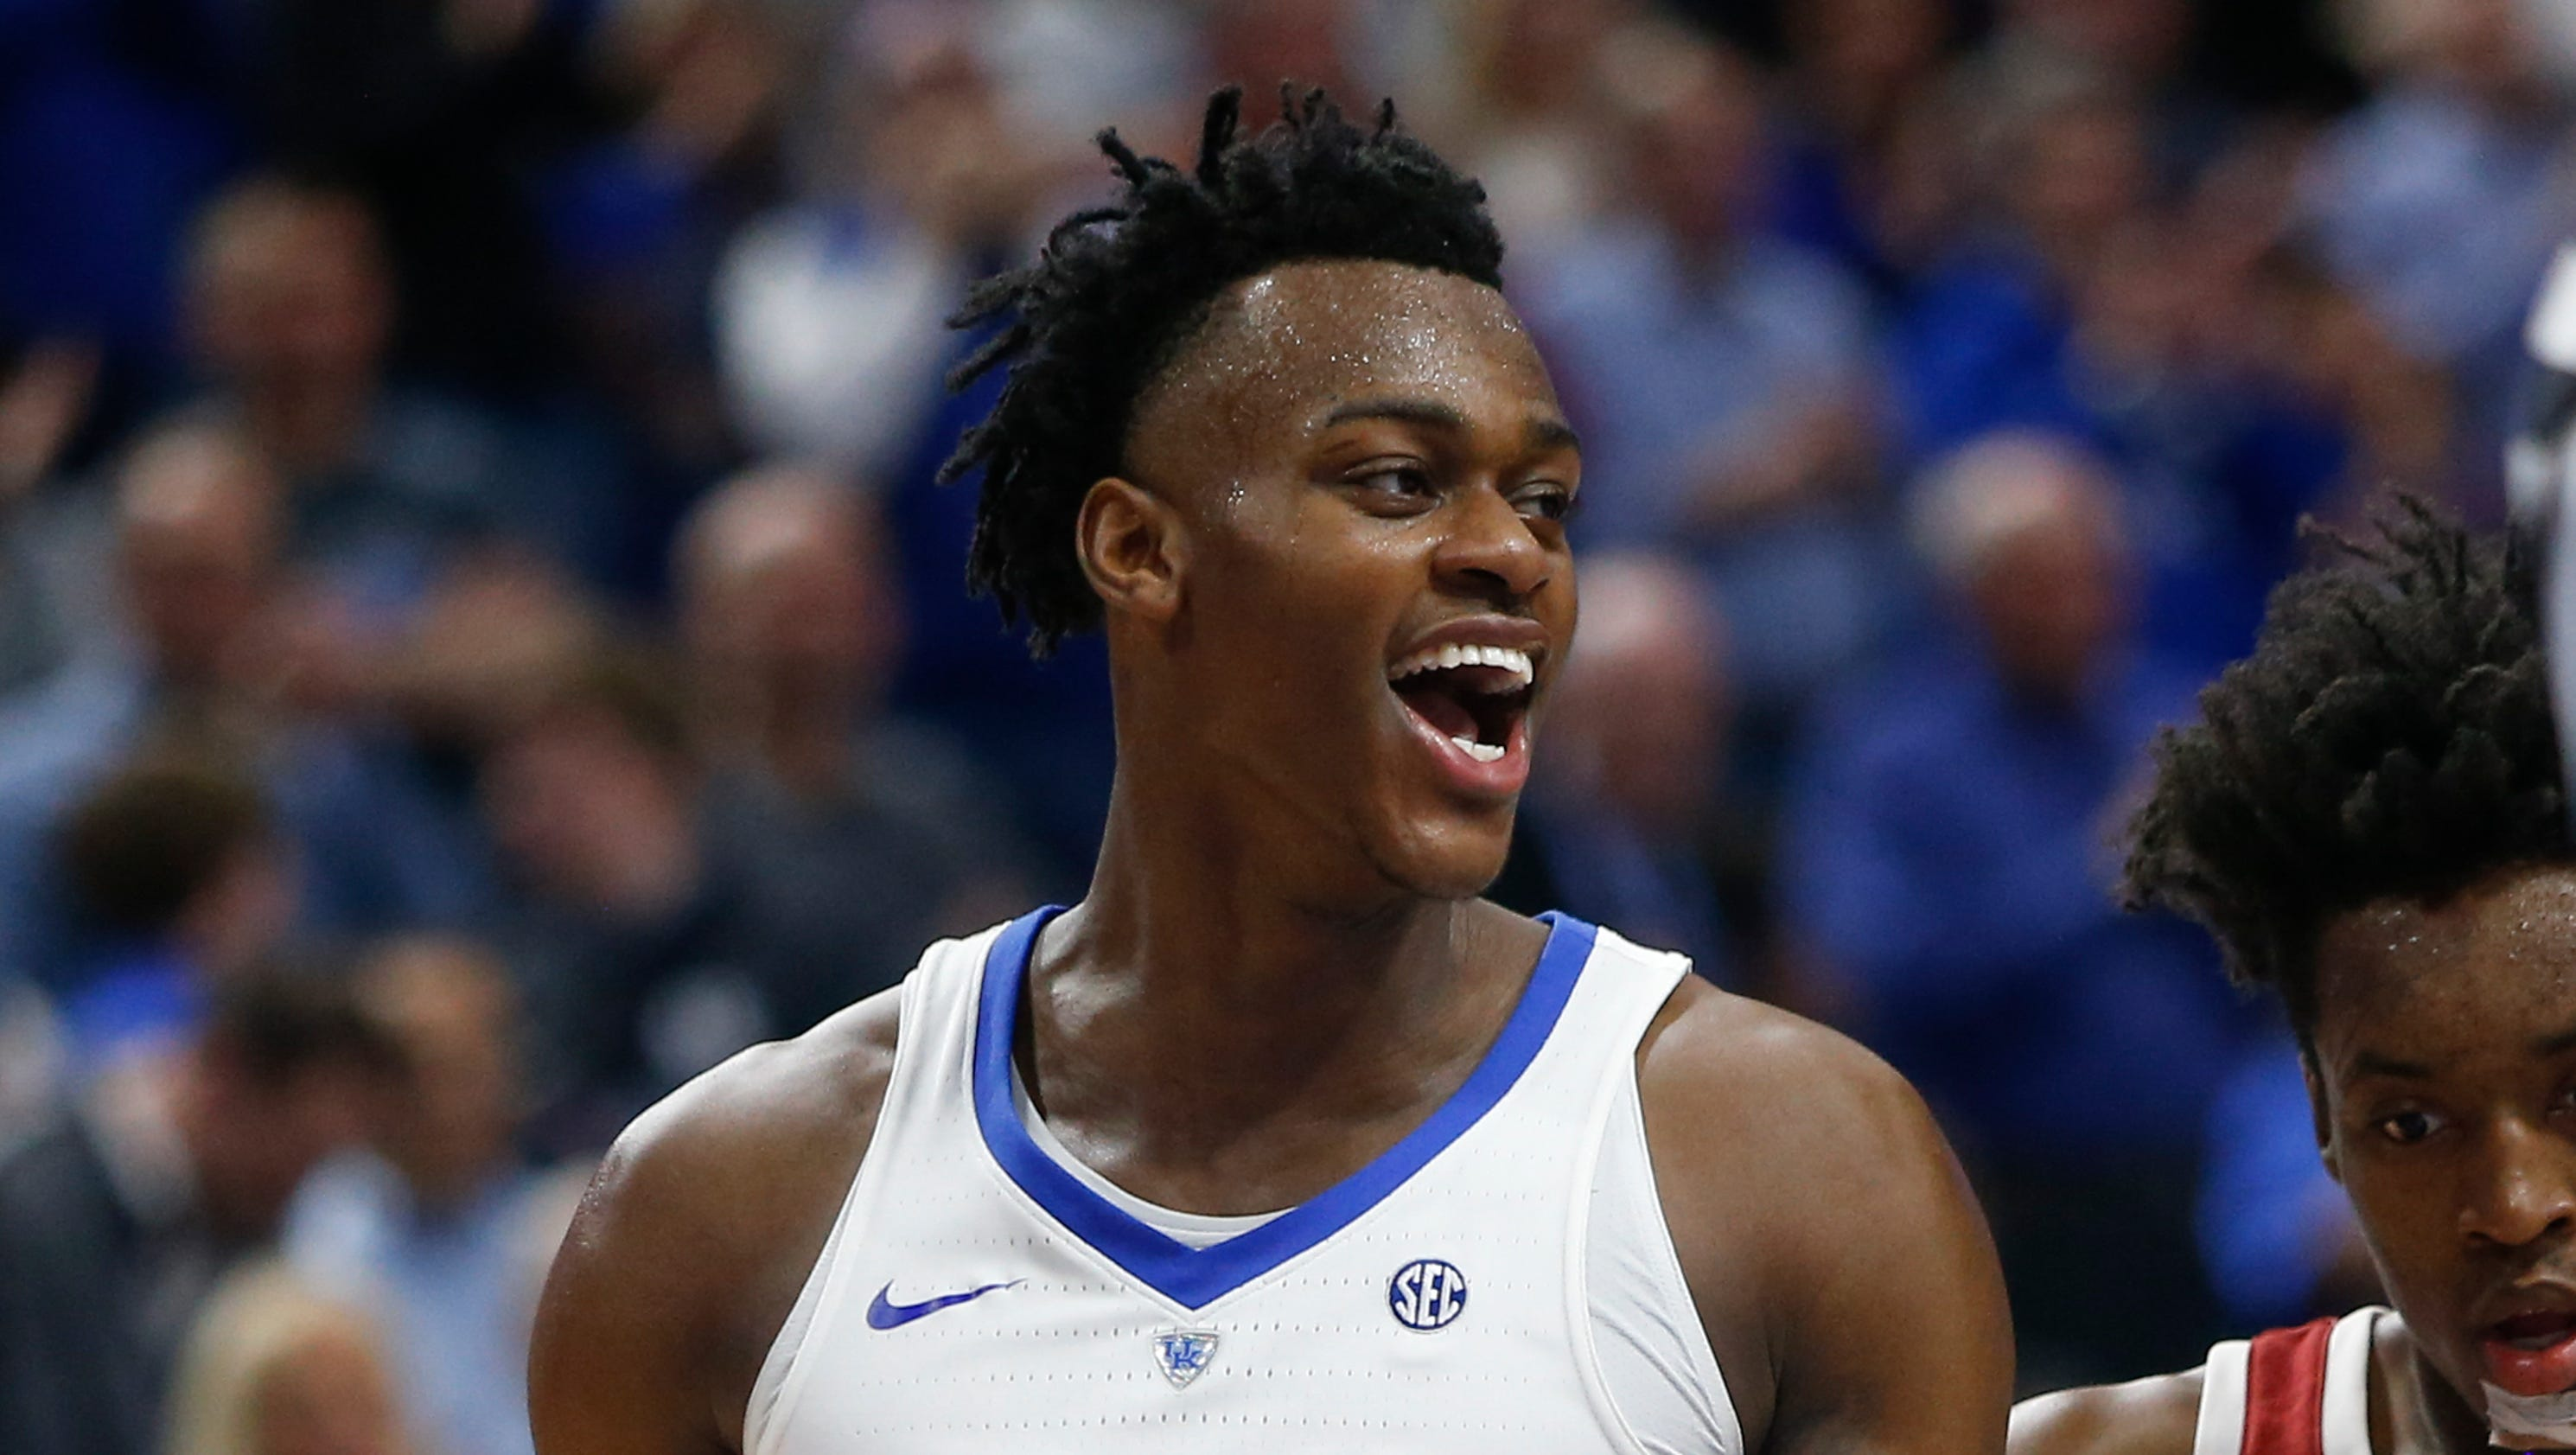 Uk Basketball 2019: A Look At Best- And Worst-case